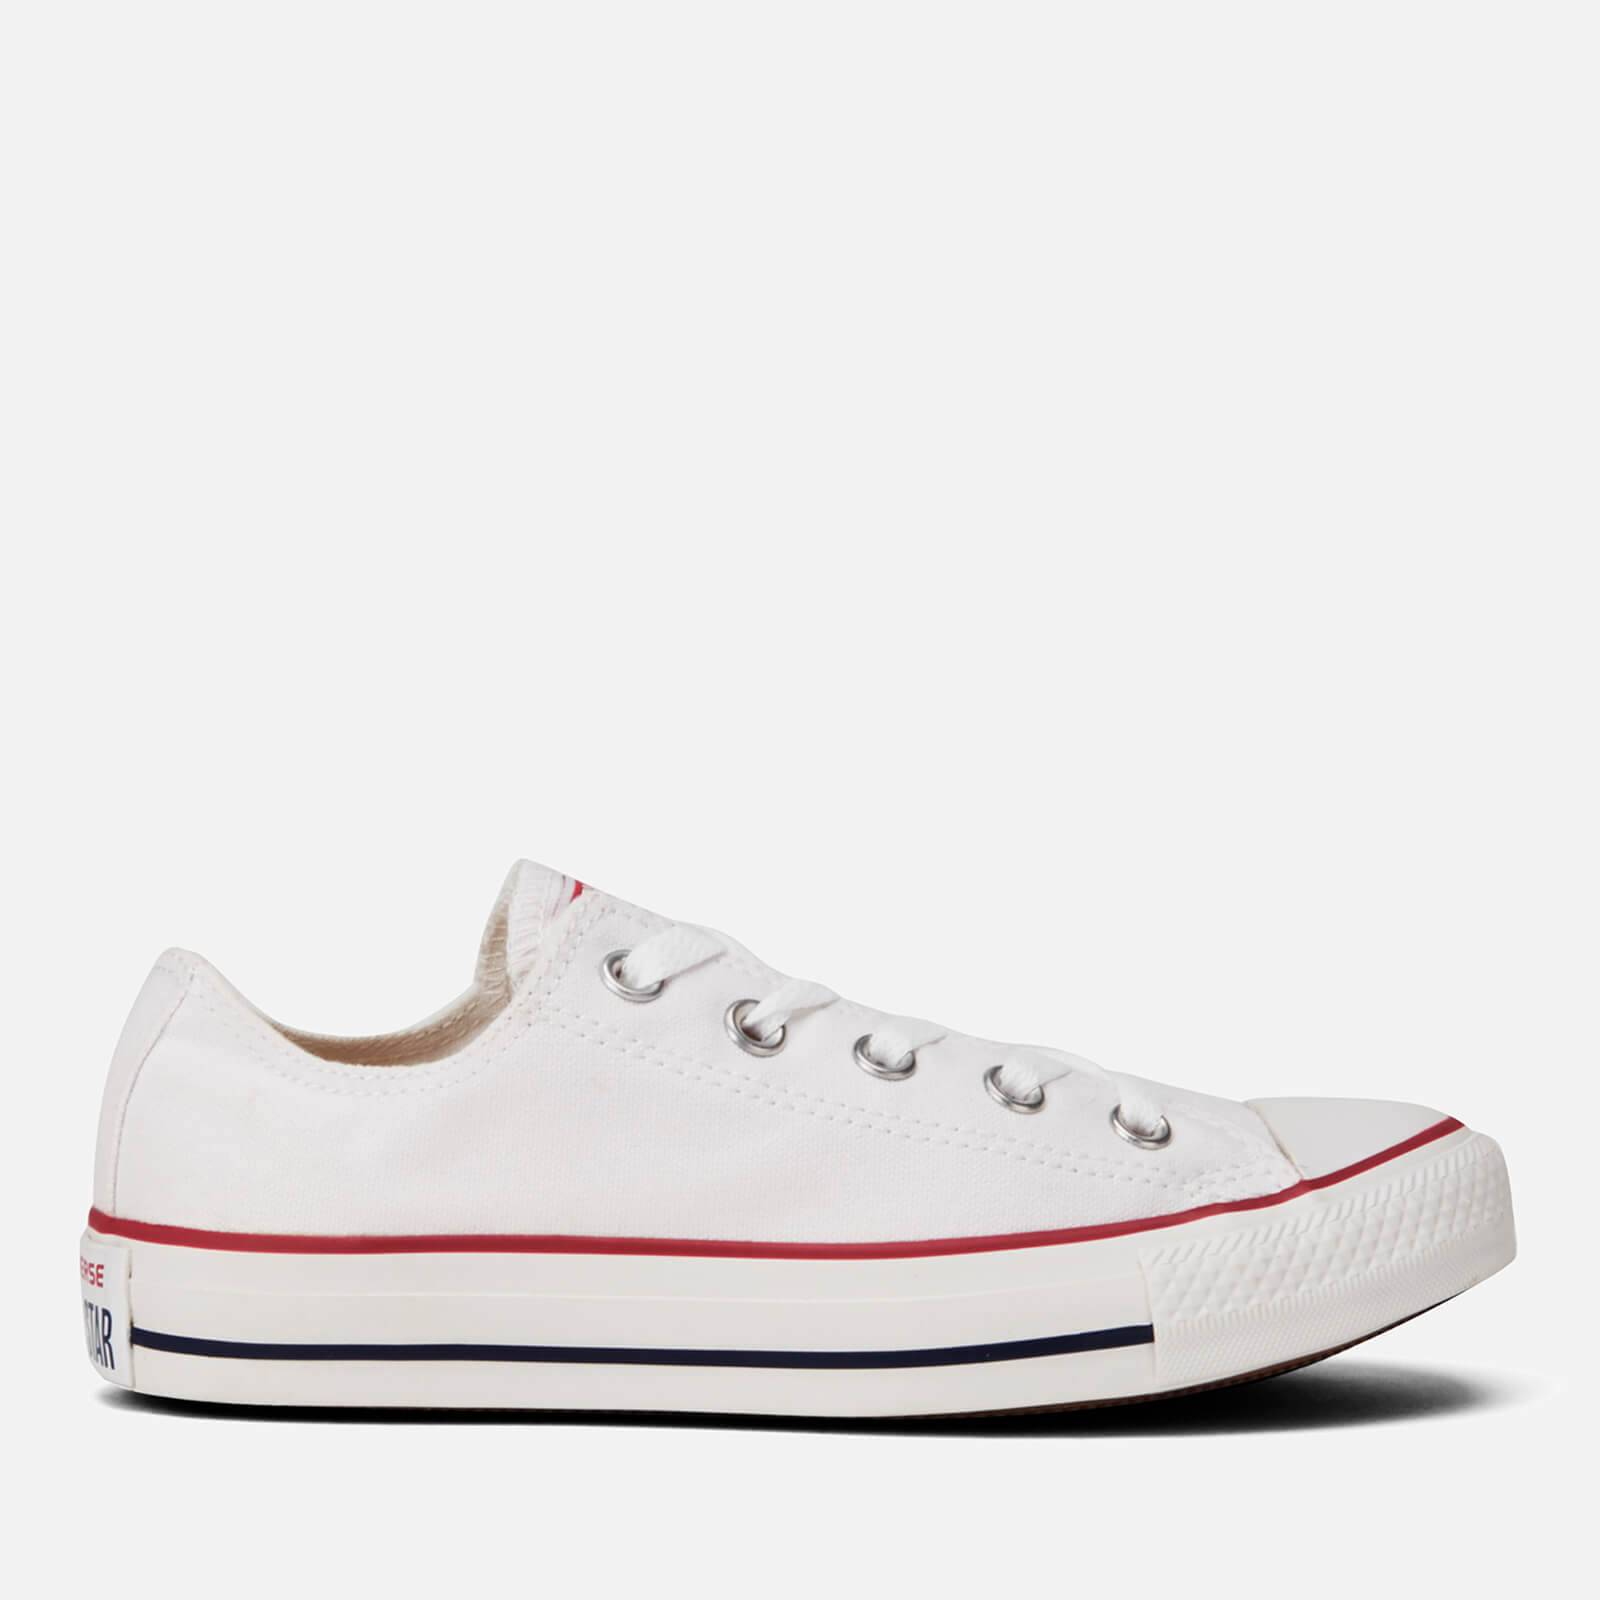 Converse Chuck Taylor All Star Ox Trainers - Optical White - UK 4